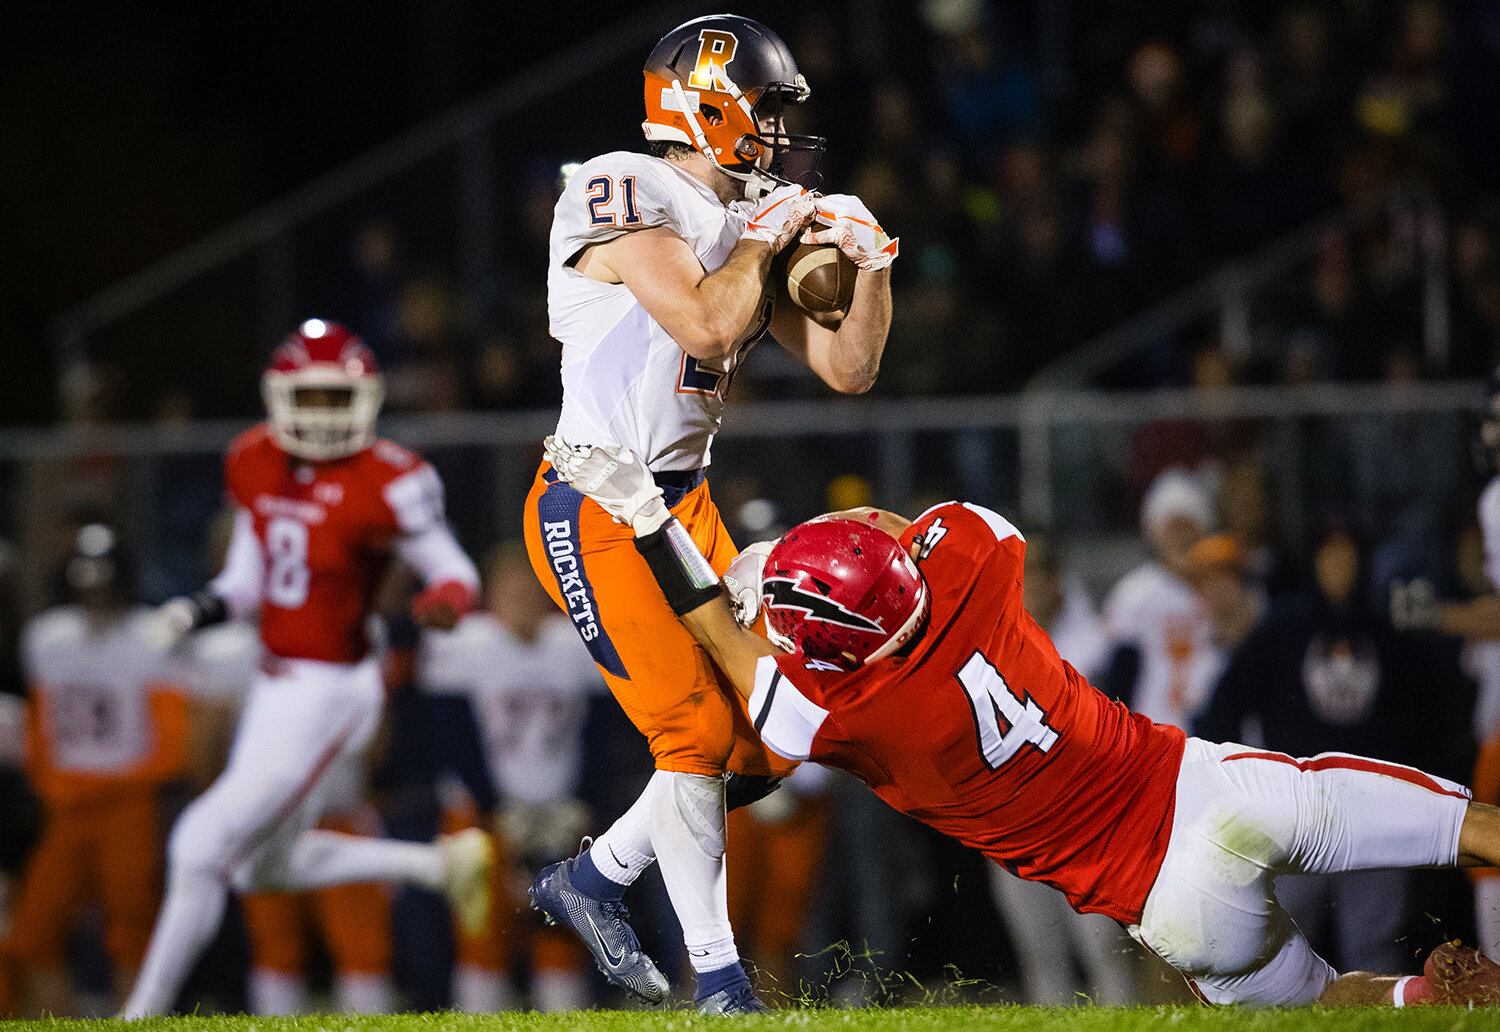 Rochester's David Yoggerst (21)  makes a catch in front of Glenwood's Jake Burris (4)  at Glenwood High School Friday, Oct. 25, 2019. [Ted Schurter/The State Journal-Register]